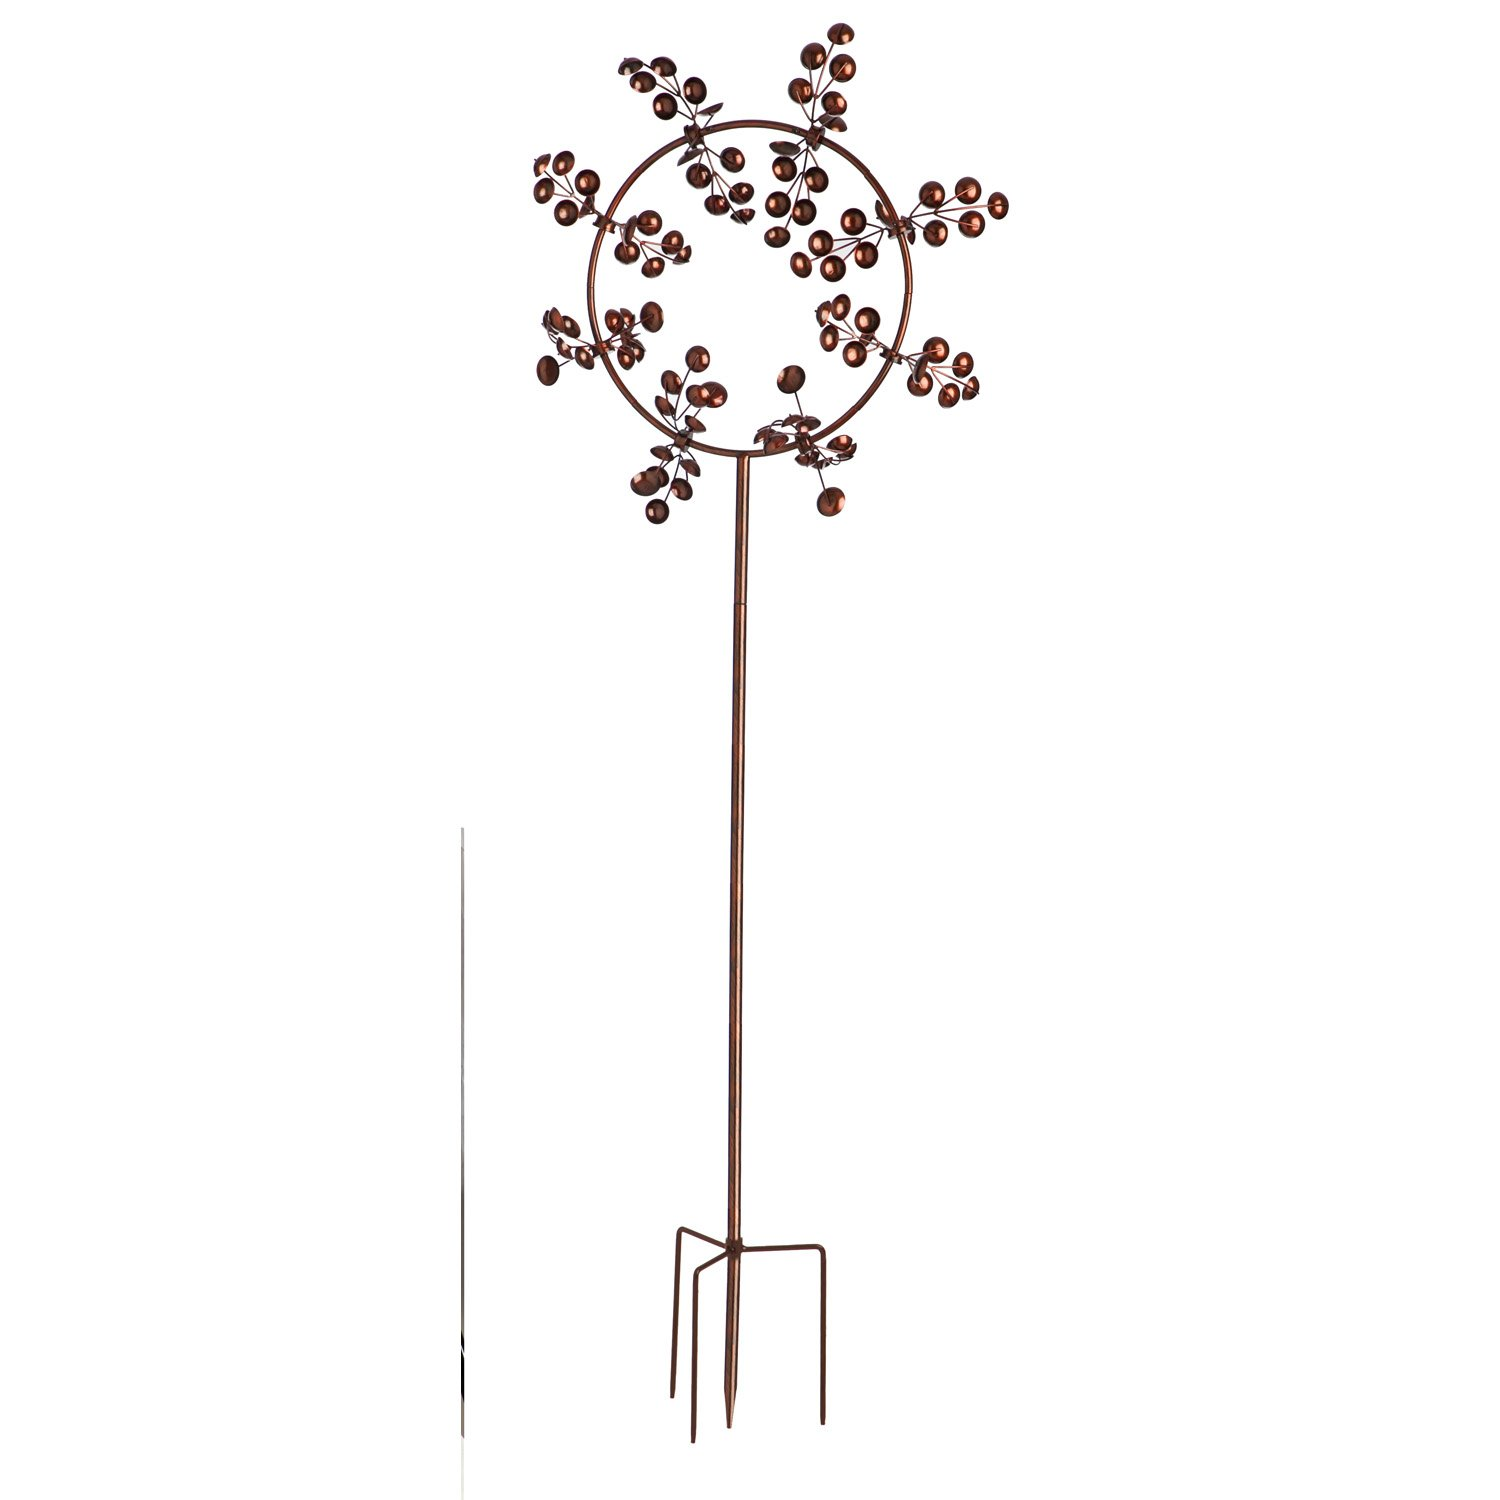 Evergreen 75-inch Gleaming Jubilee Outdoor Safe Kinetic Wind Spinner Garden Stake